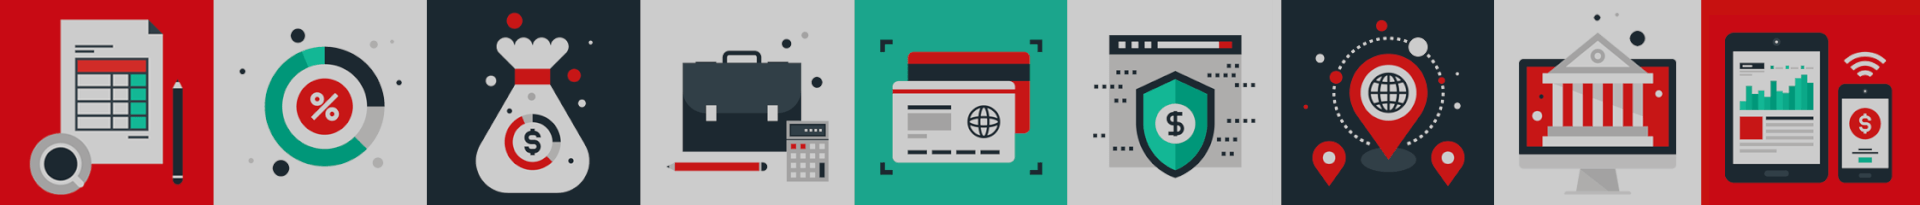 footer bottom icons - CIC Credit